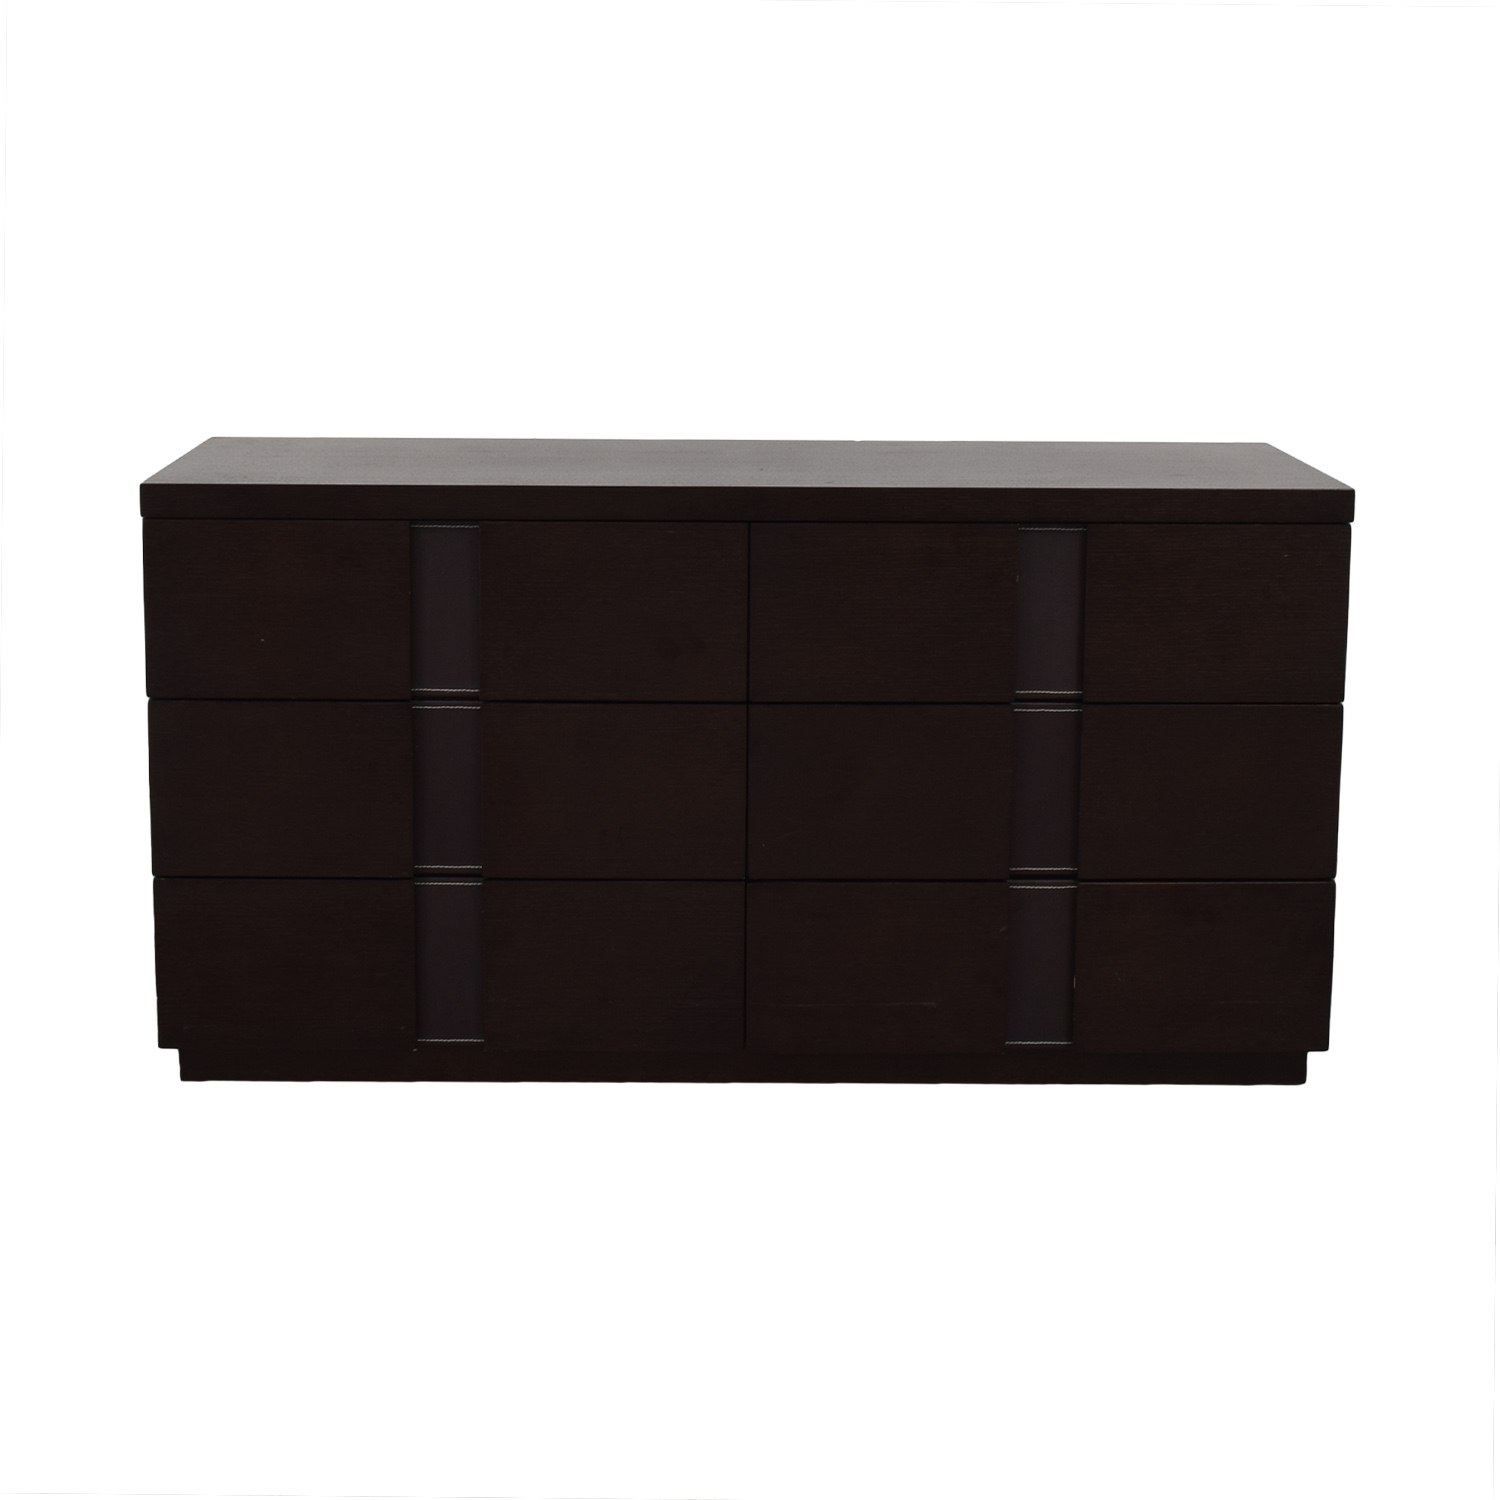 J&M Furniture J&M Furniture Six Drawer Dresser dark brown